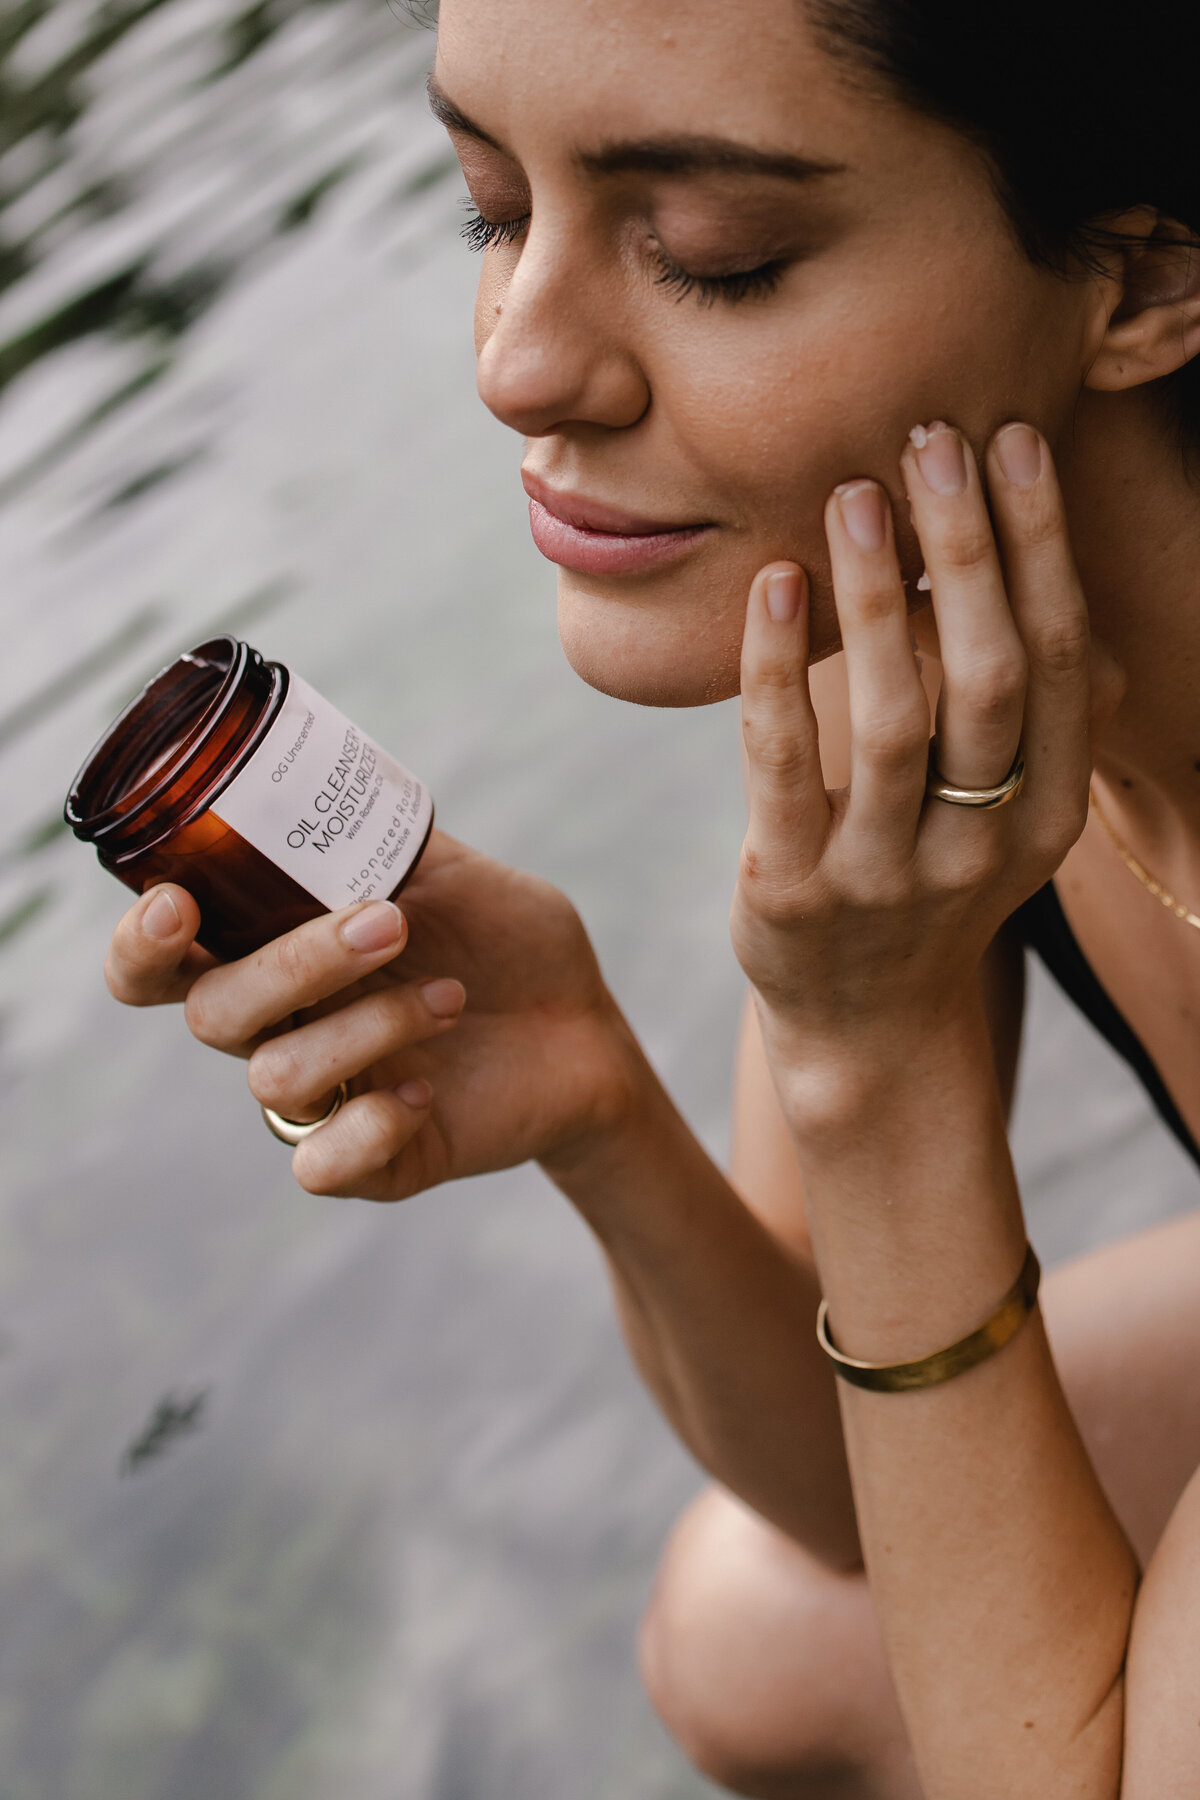 Wekiva Springs Skincare Photoshoot with Honored Roots by Alex Perry Photographer for Conscious Brands